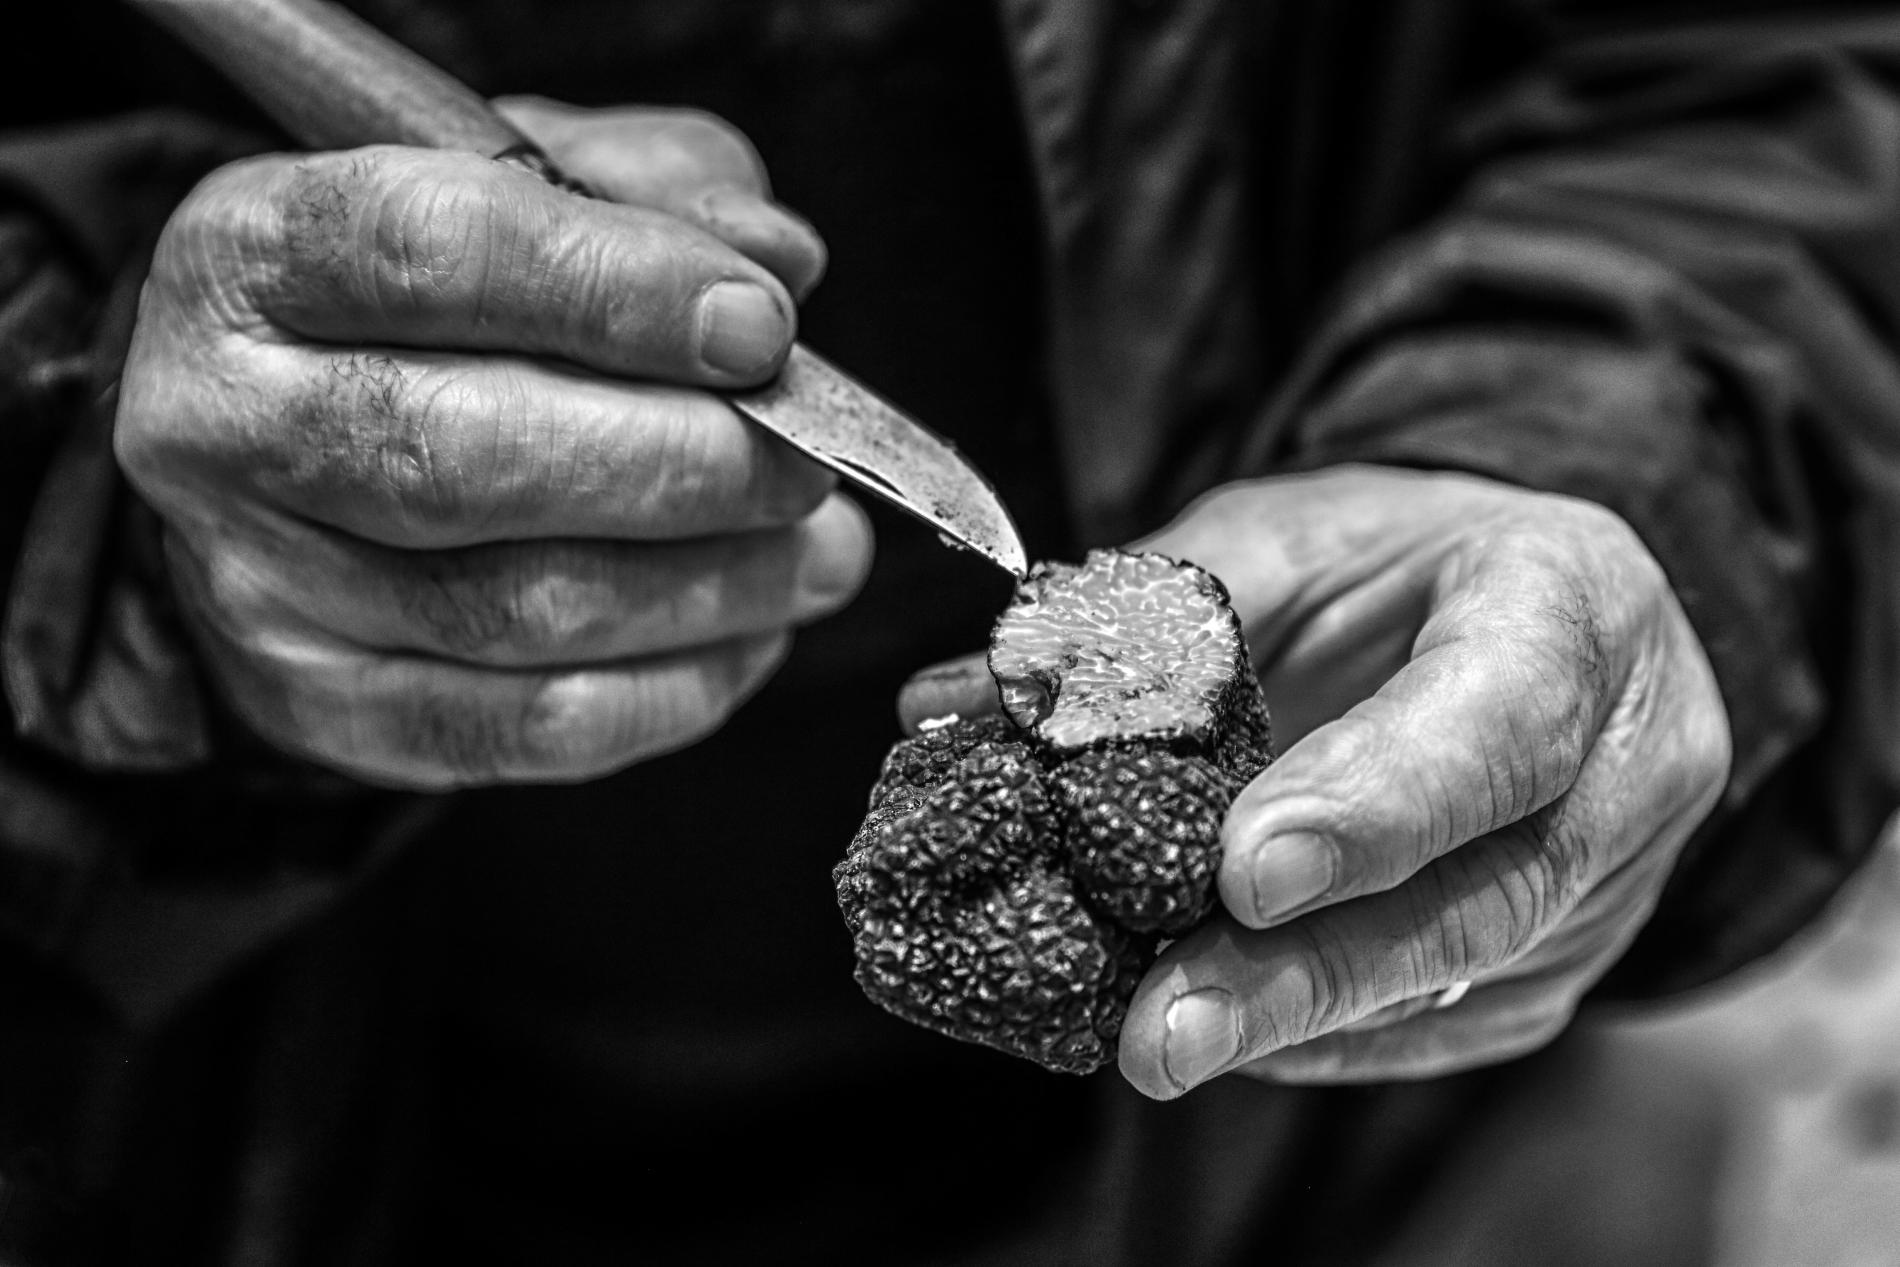 Black truffle of Perigord